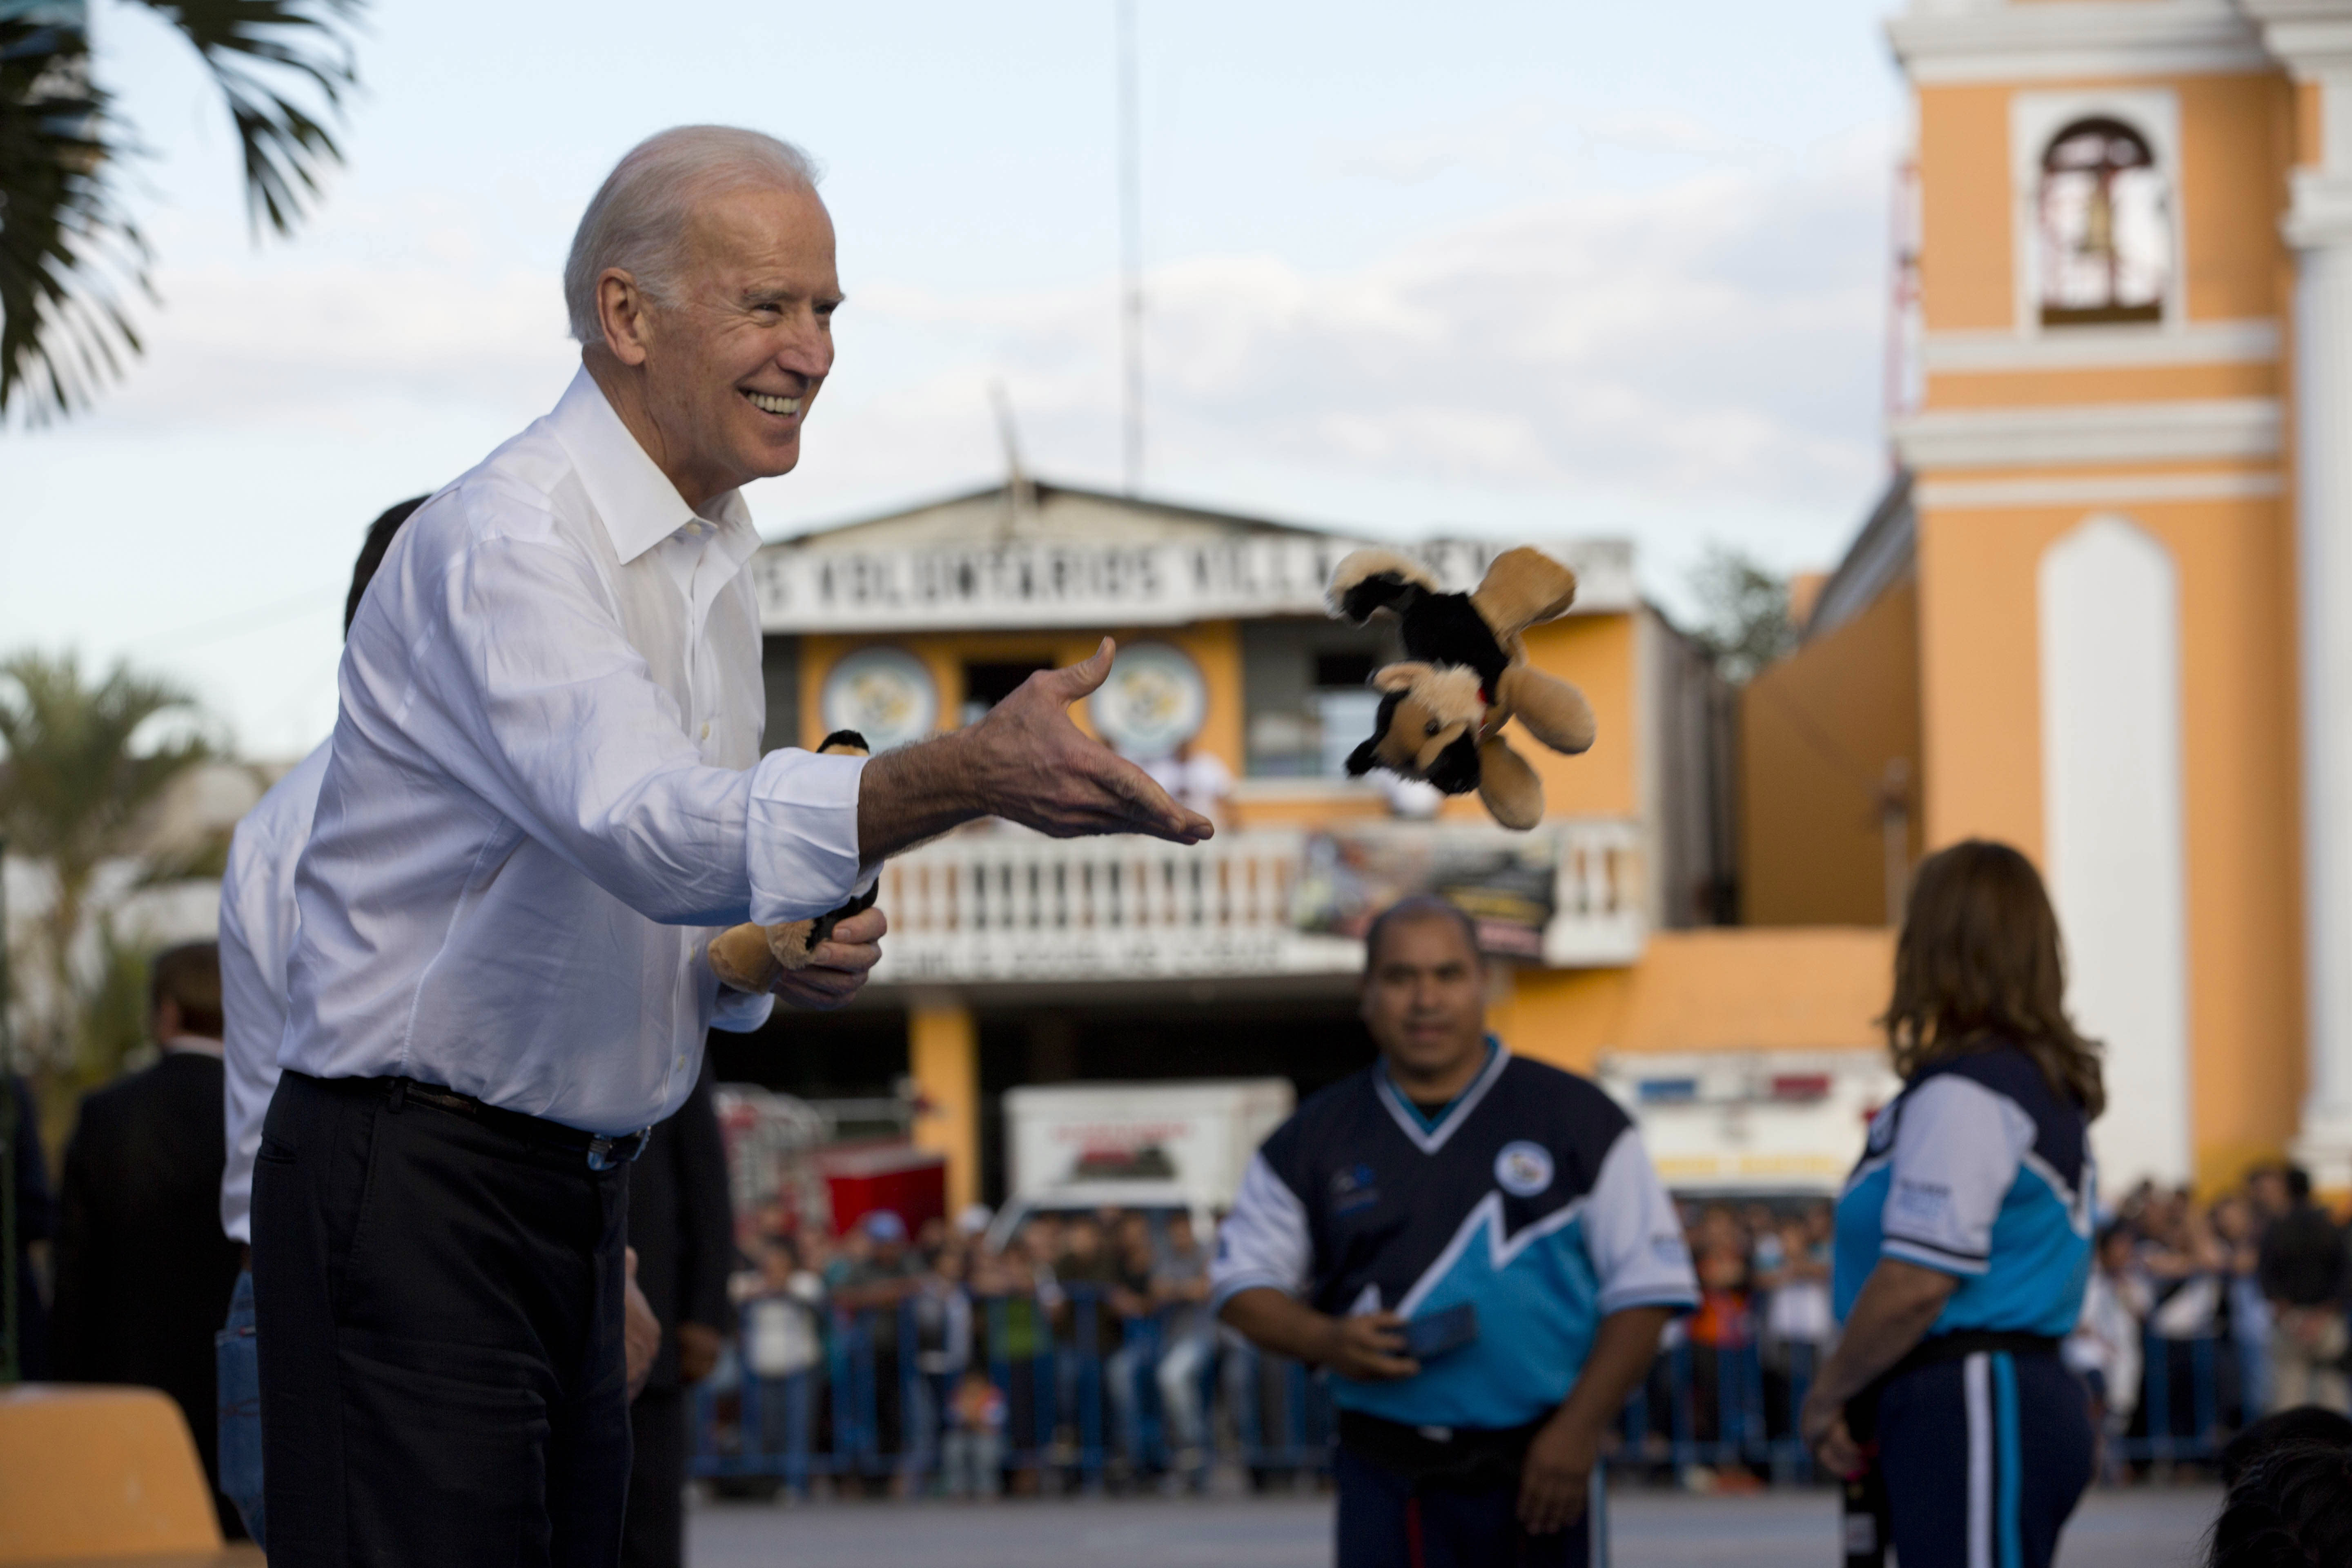 Biden should run. Now